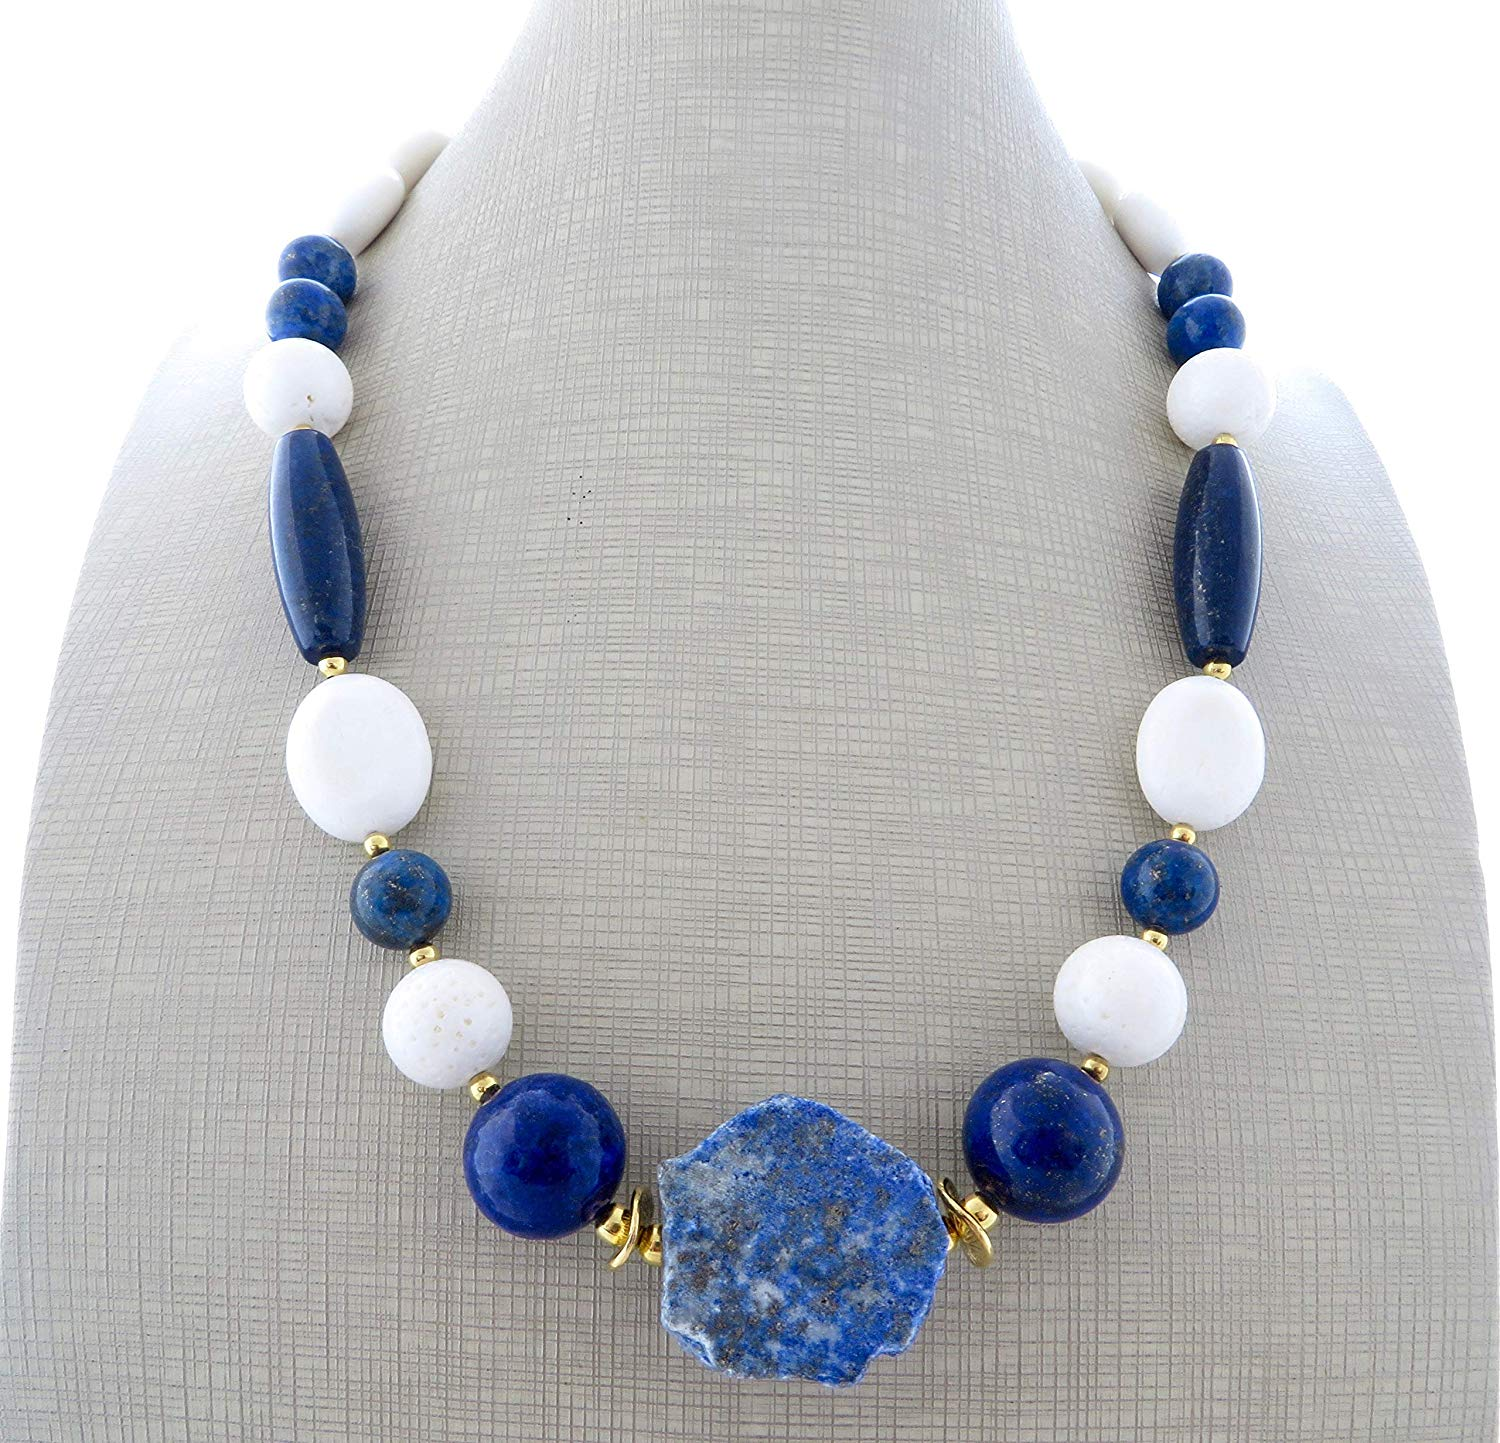 White jade necklace, blue lapis lazuli necklace, chunky choker, big bold necklace, beaded necklace, summer jewelry, italian designer, gift for her